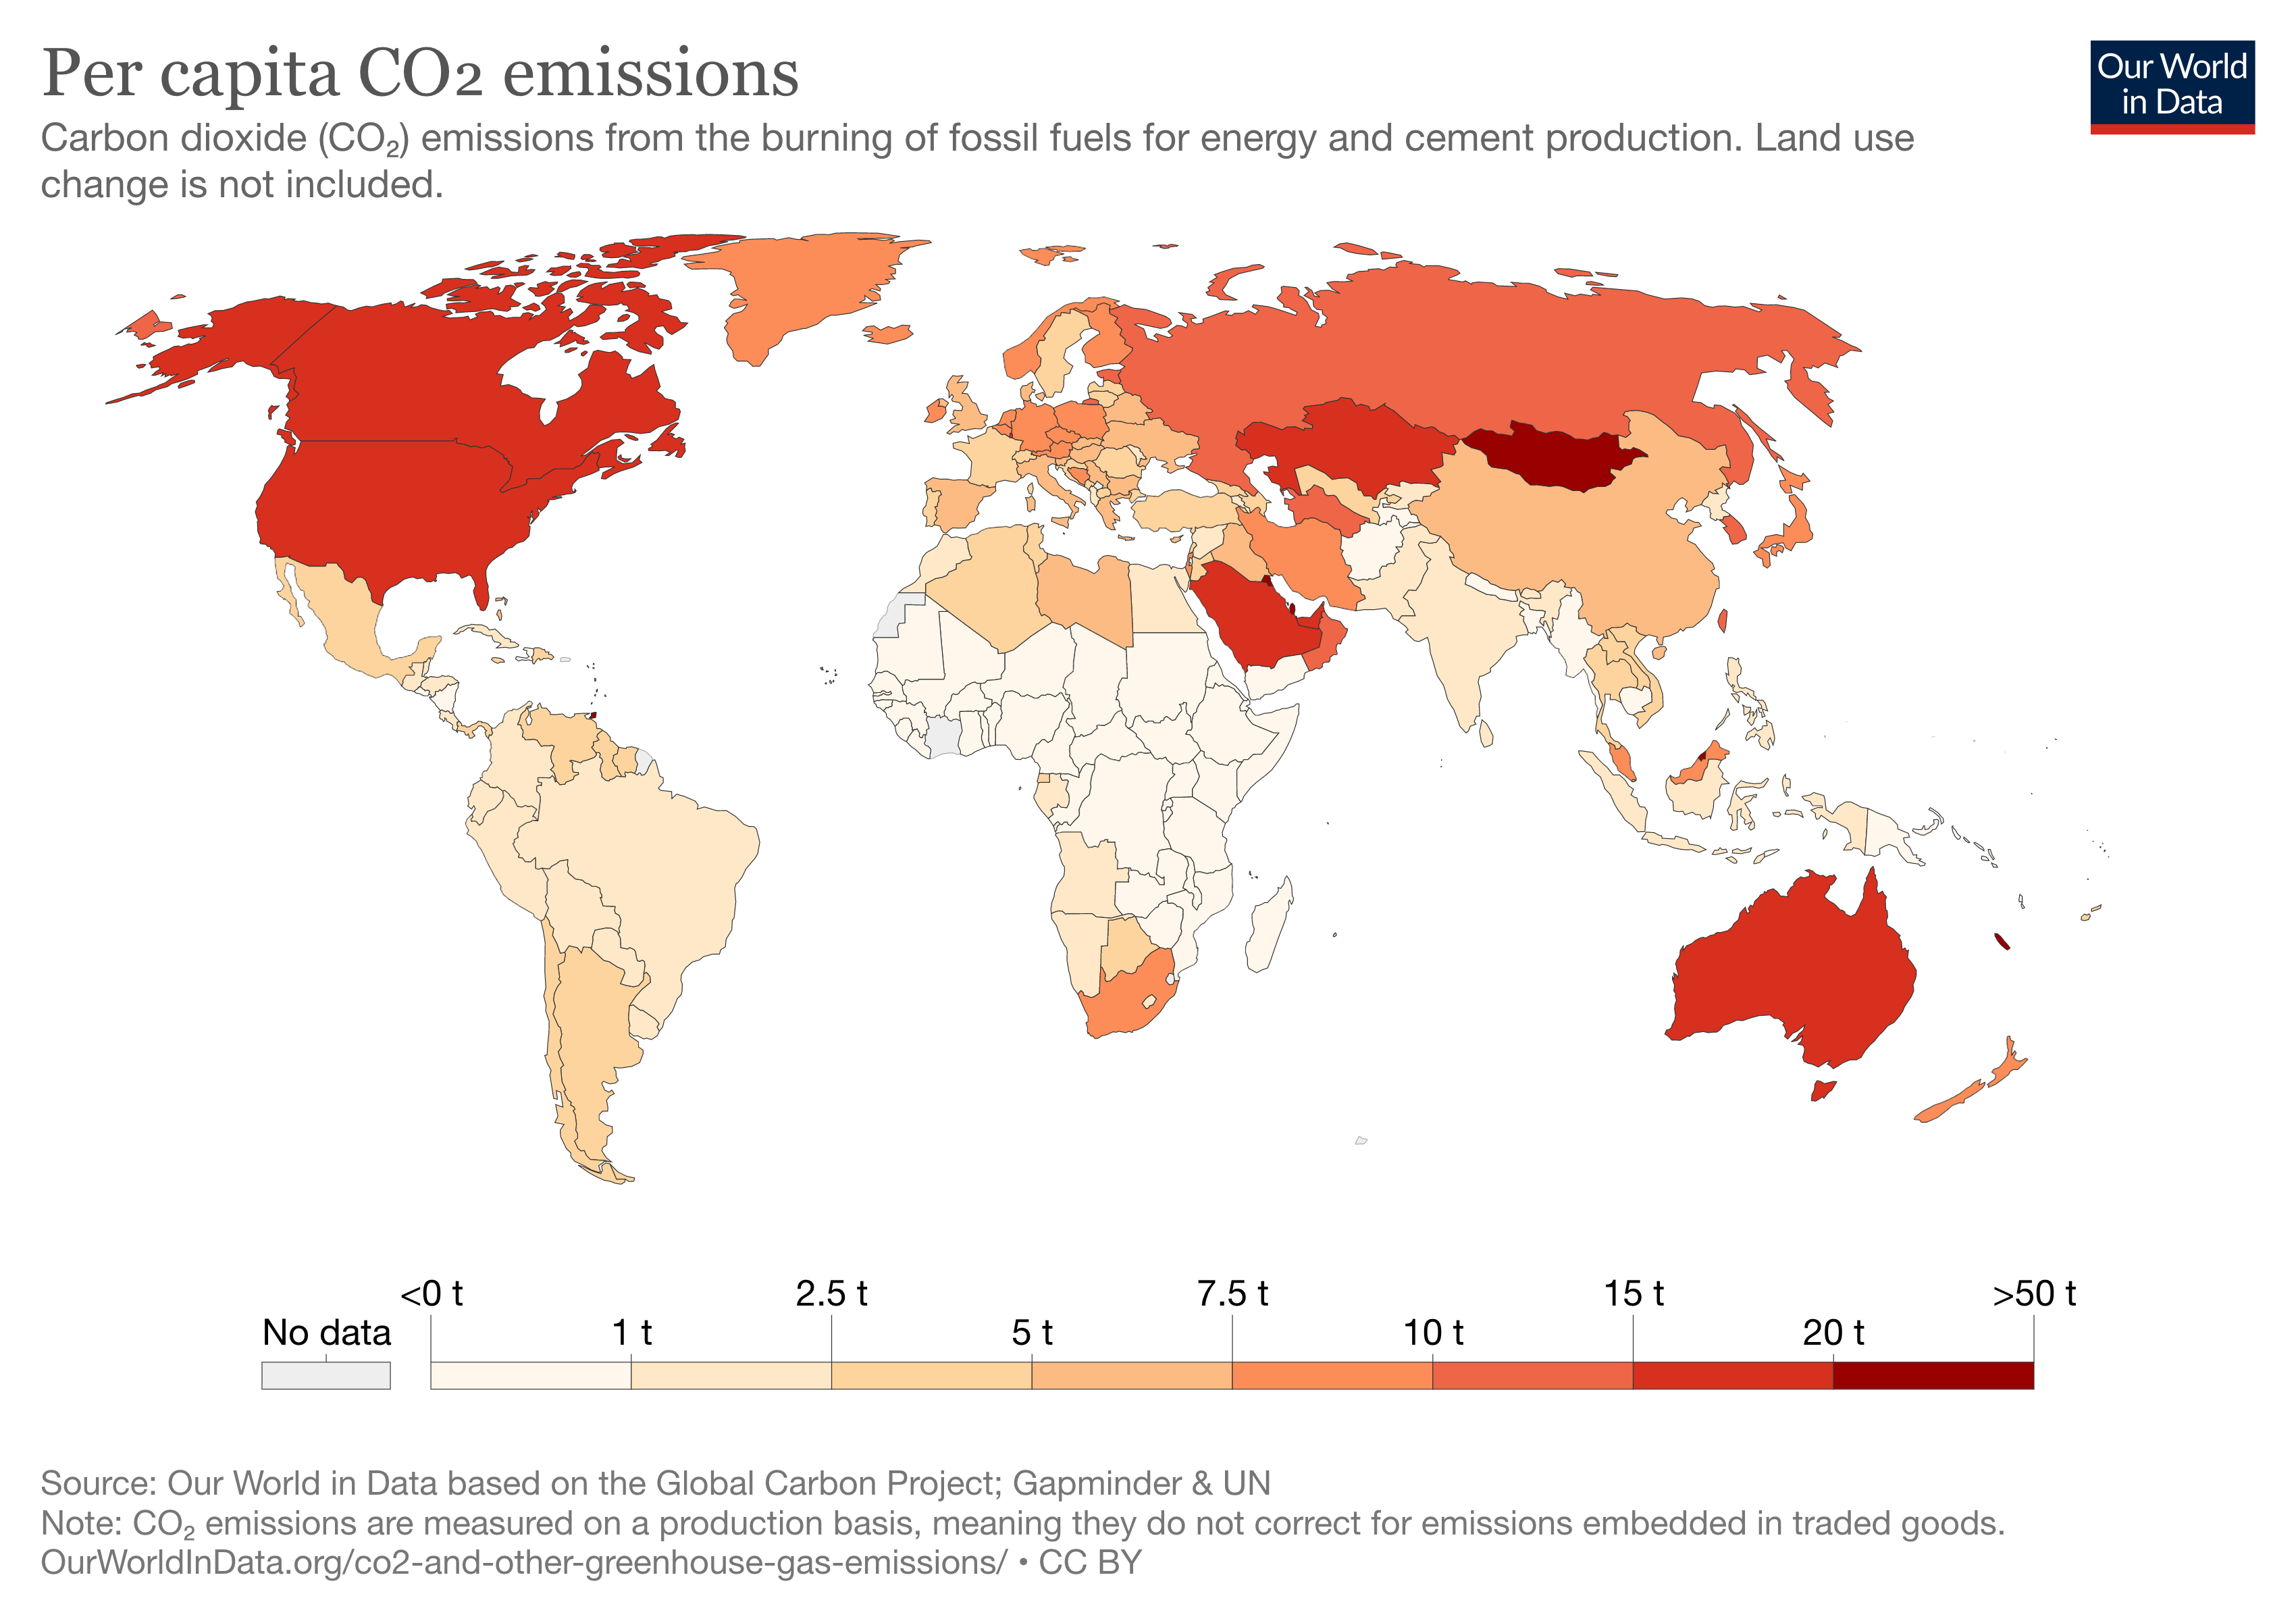 A heat map of per capita global CO2 emissions from burning fossil fuels, 2019